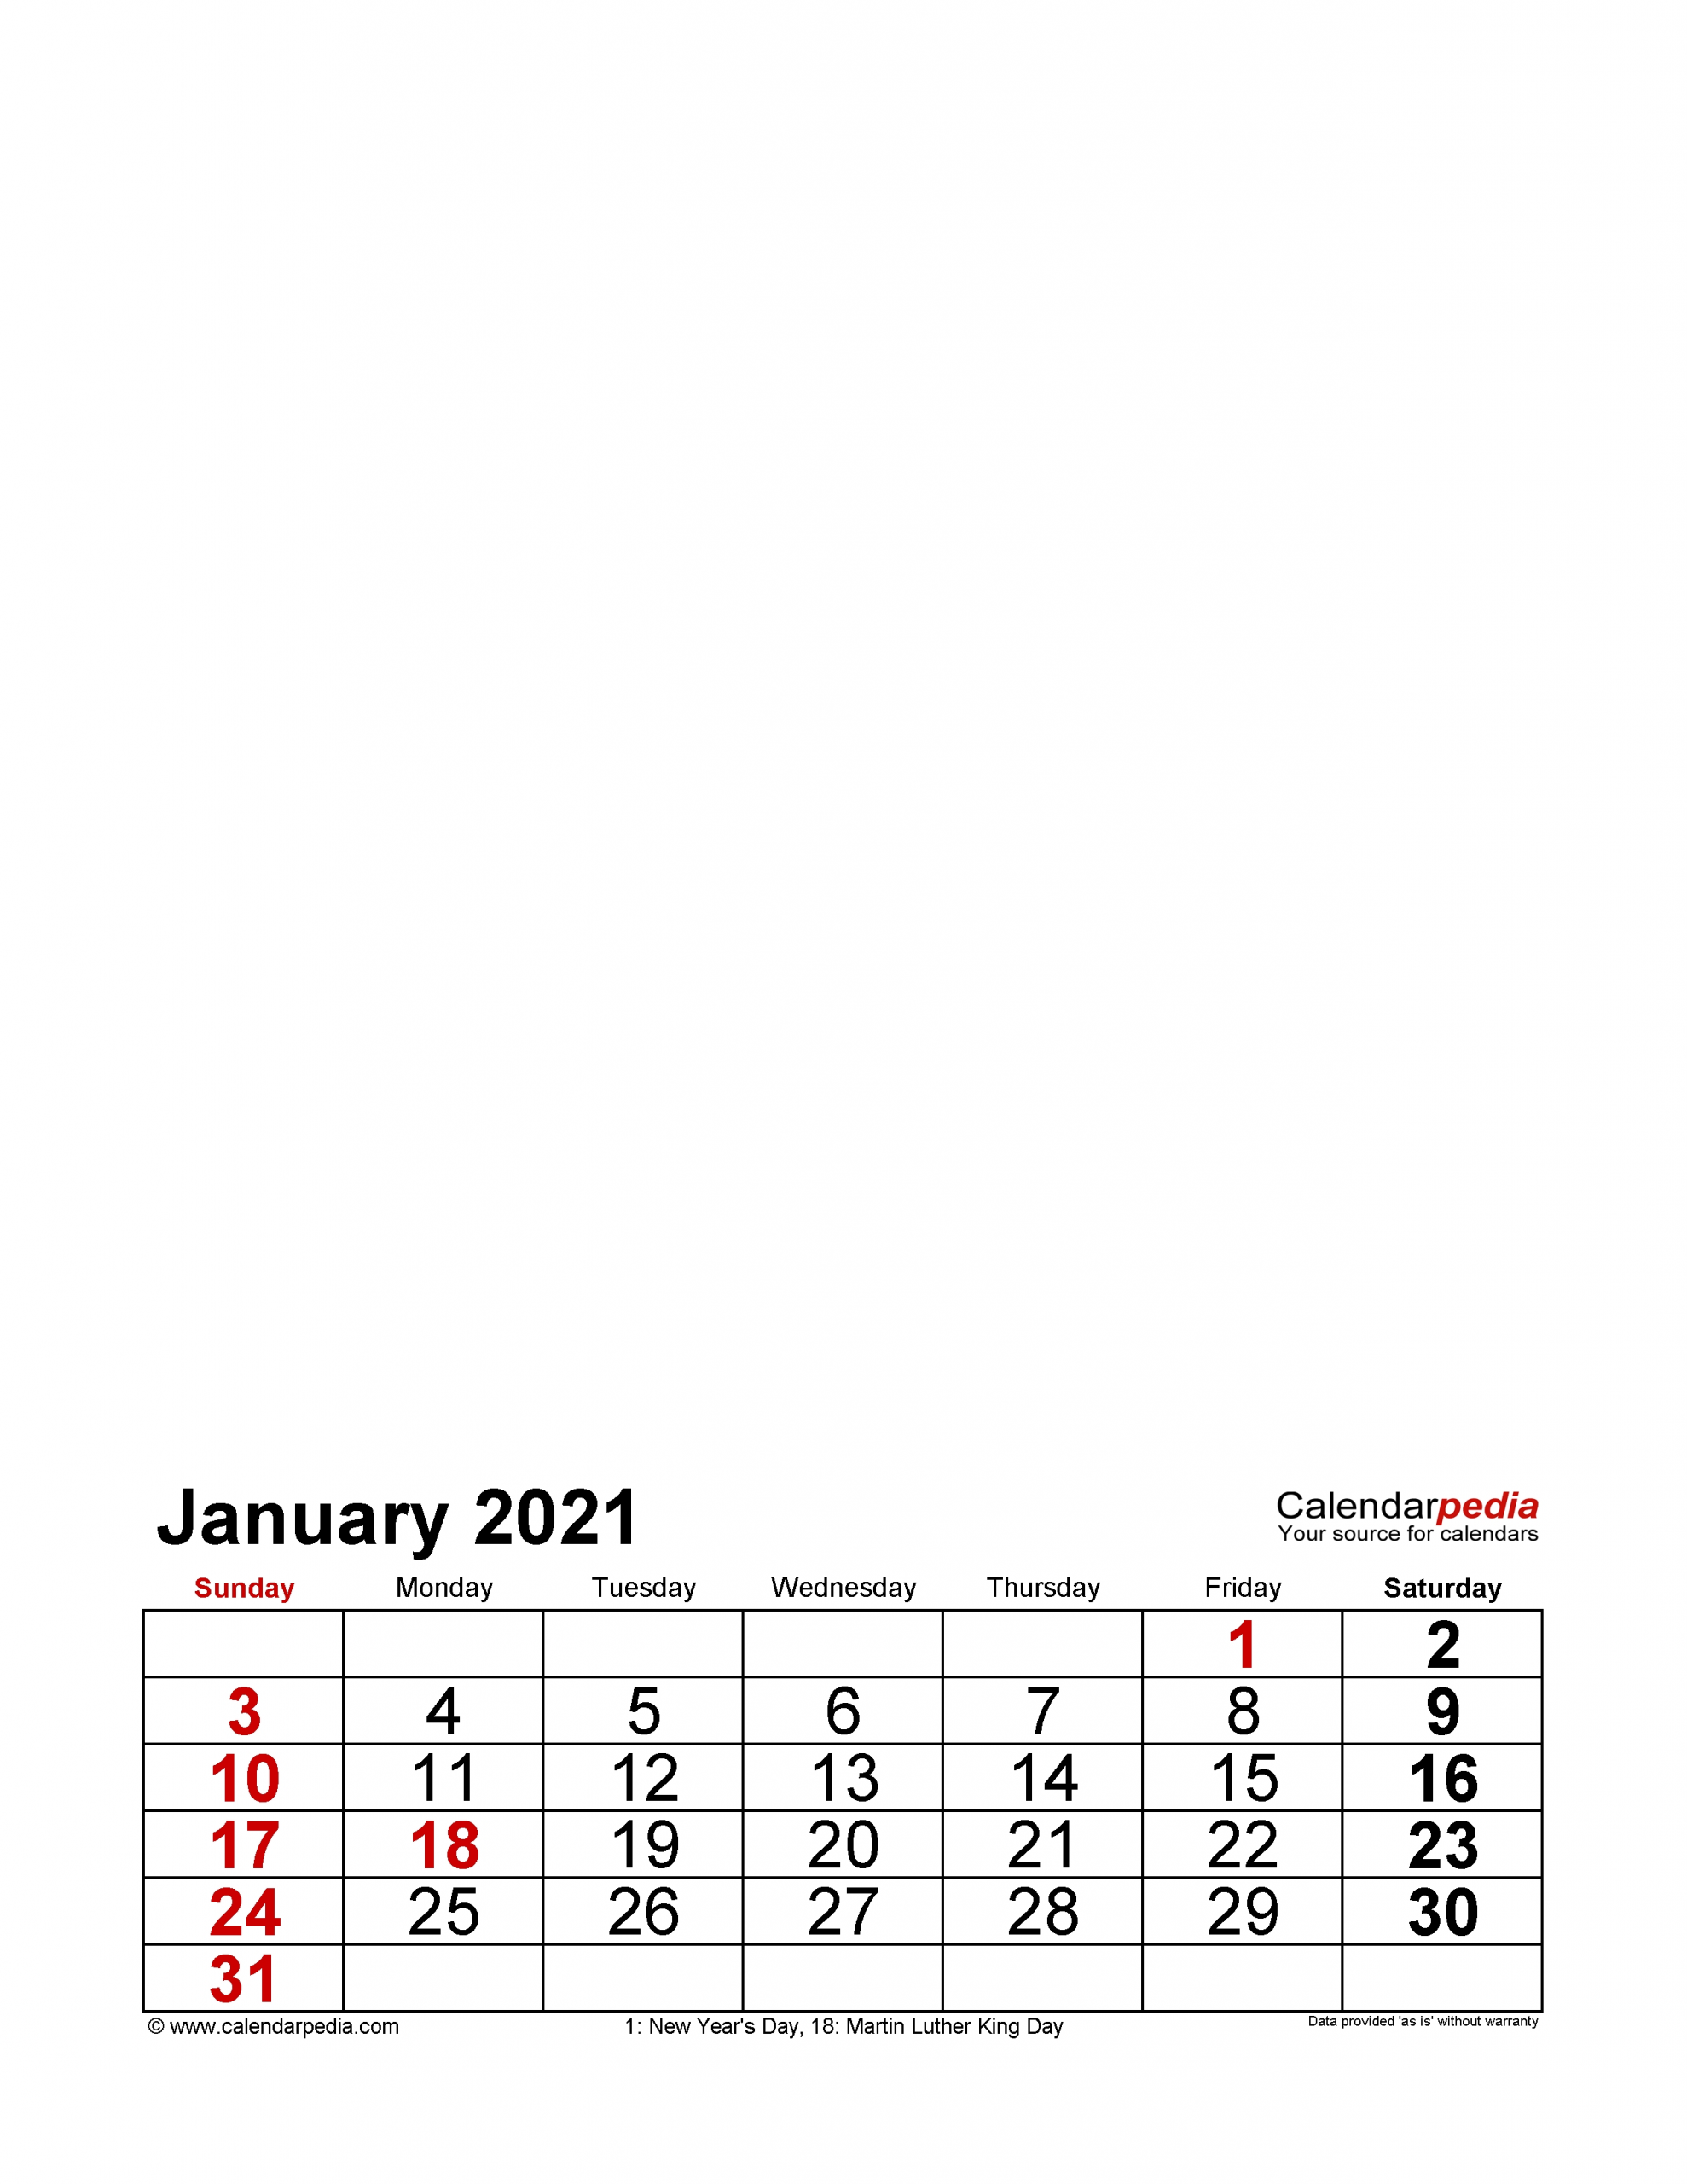 Photo Calendar 2021 - Free Printable Excel Templates intended for Microsoft Photo Calender 2021 Graphics